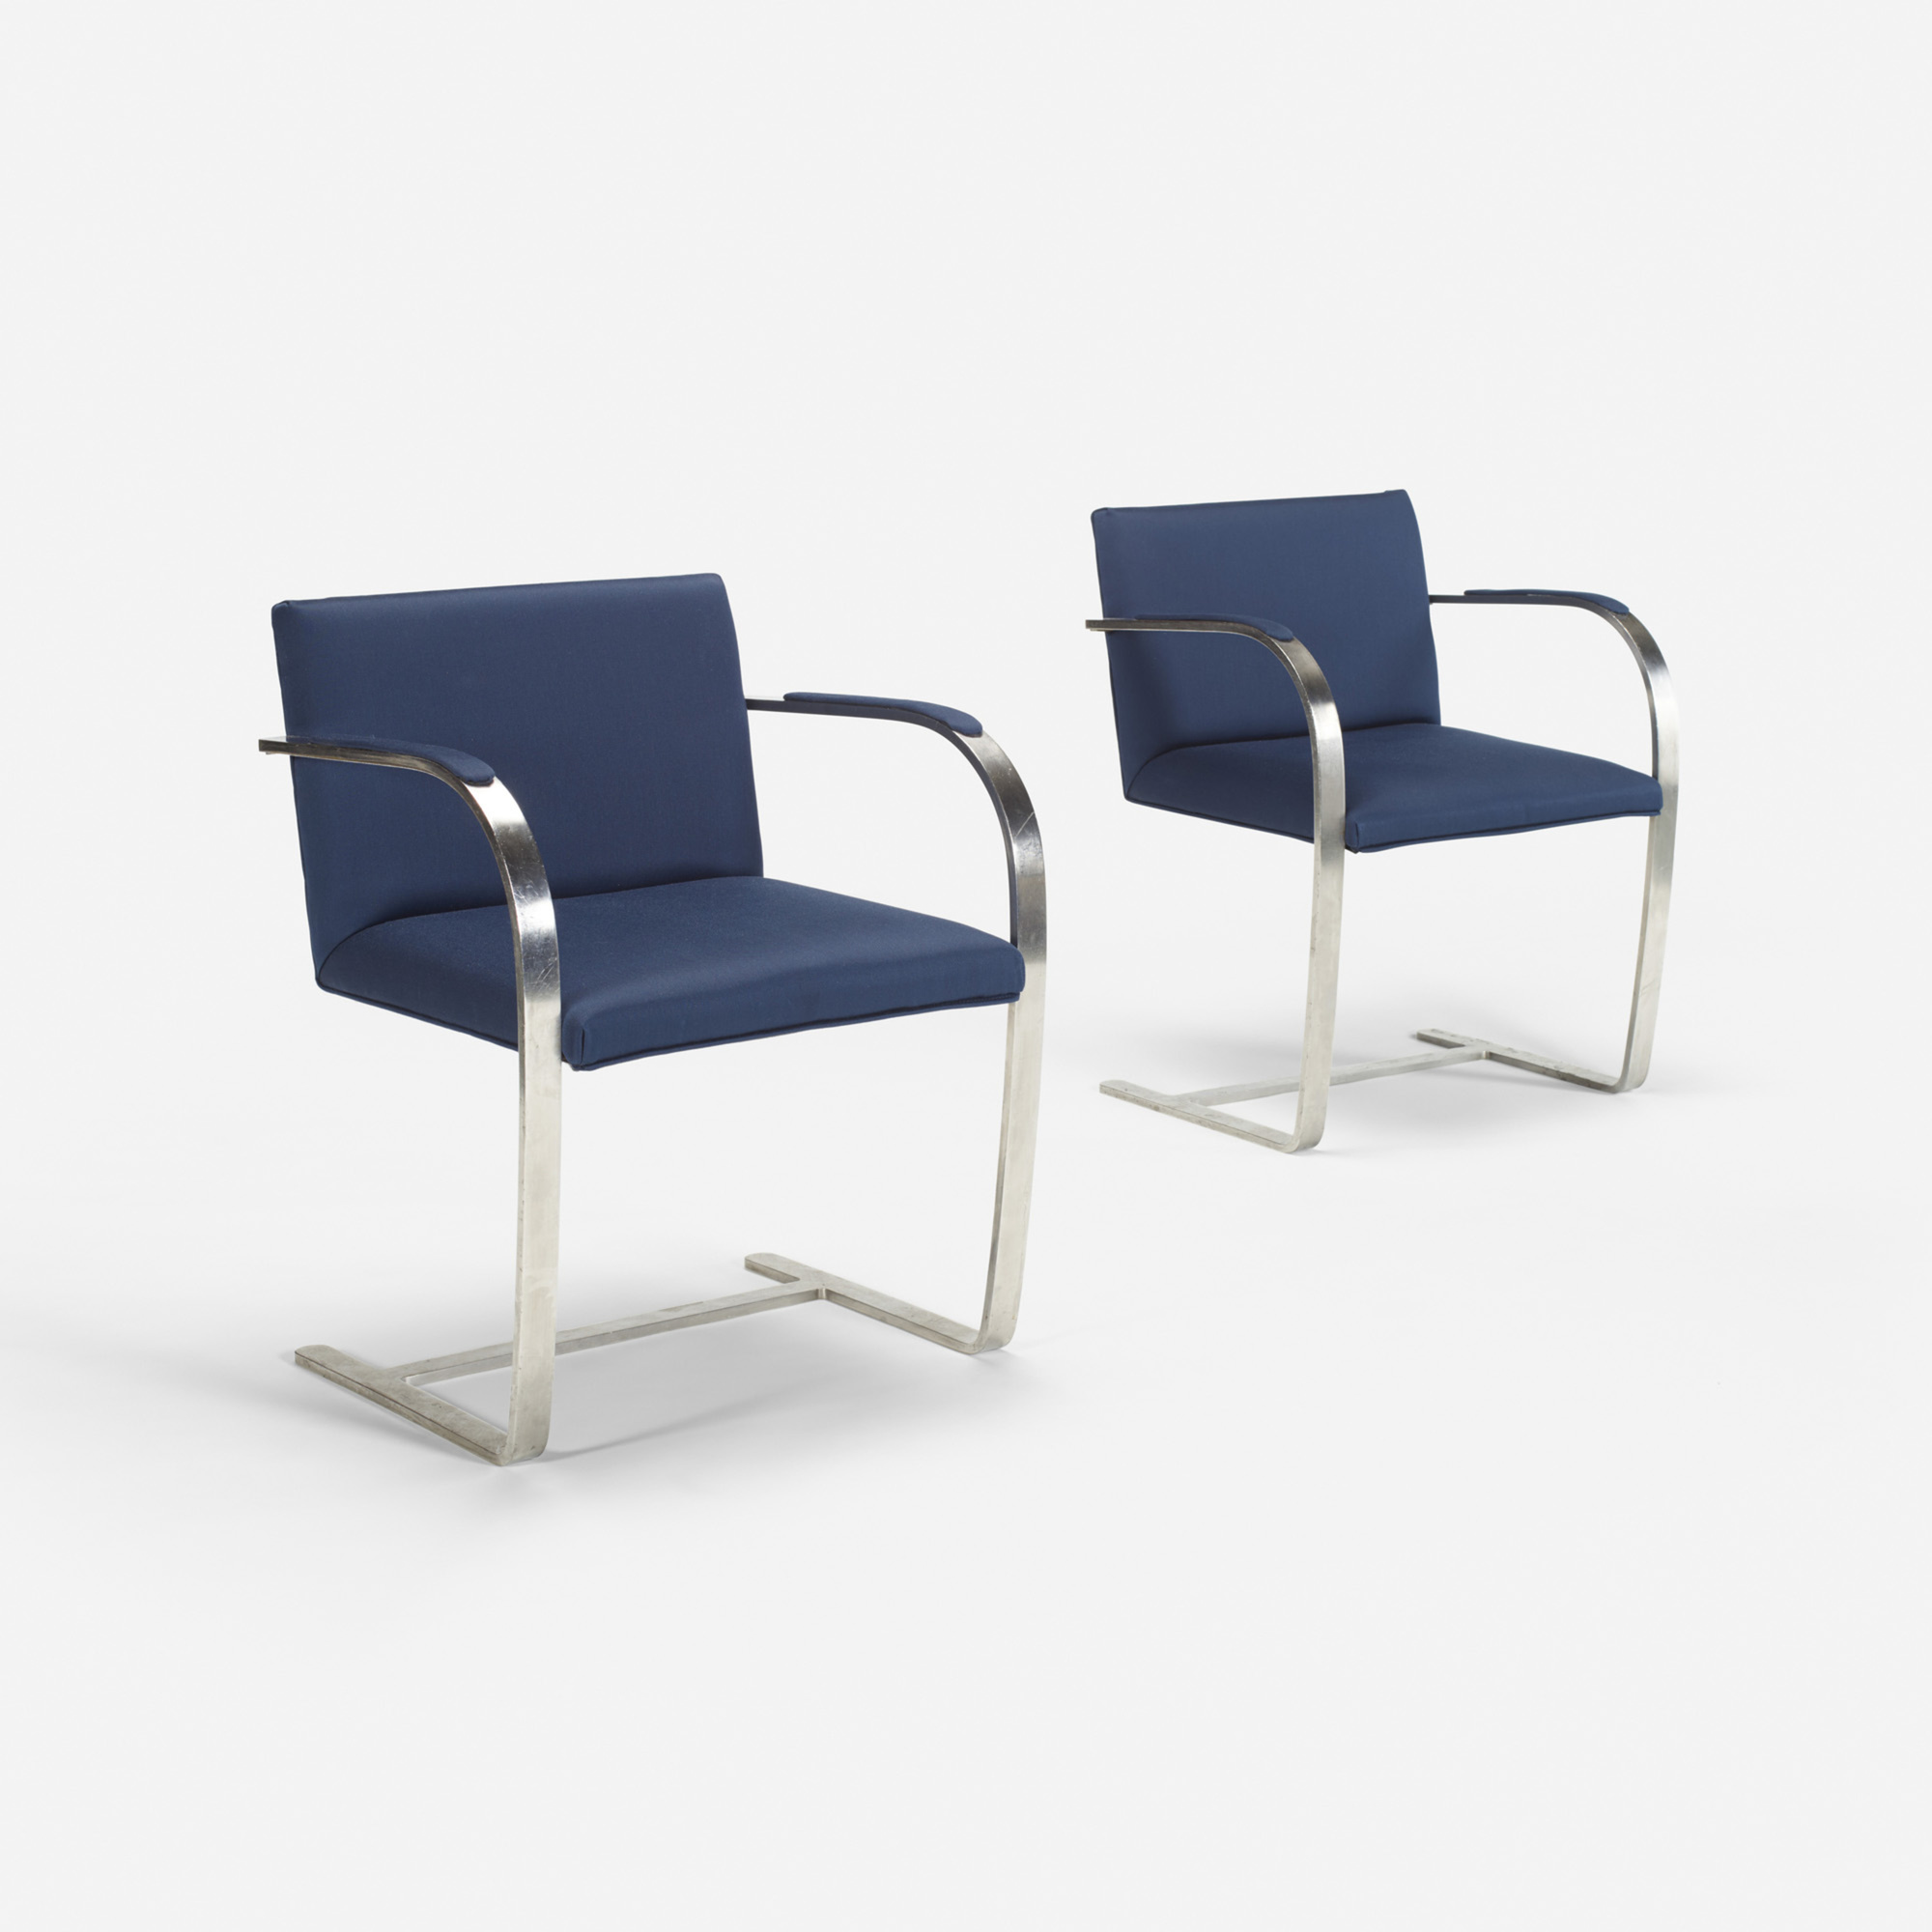 510: Ludwig Mies van der Rohe / Brno chairs from The Four Seasons, pair (1 of 1)